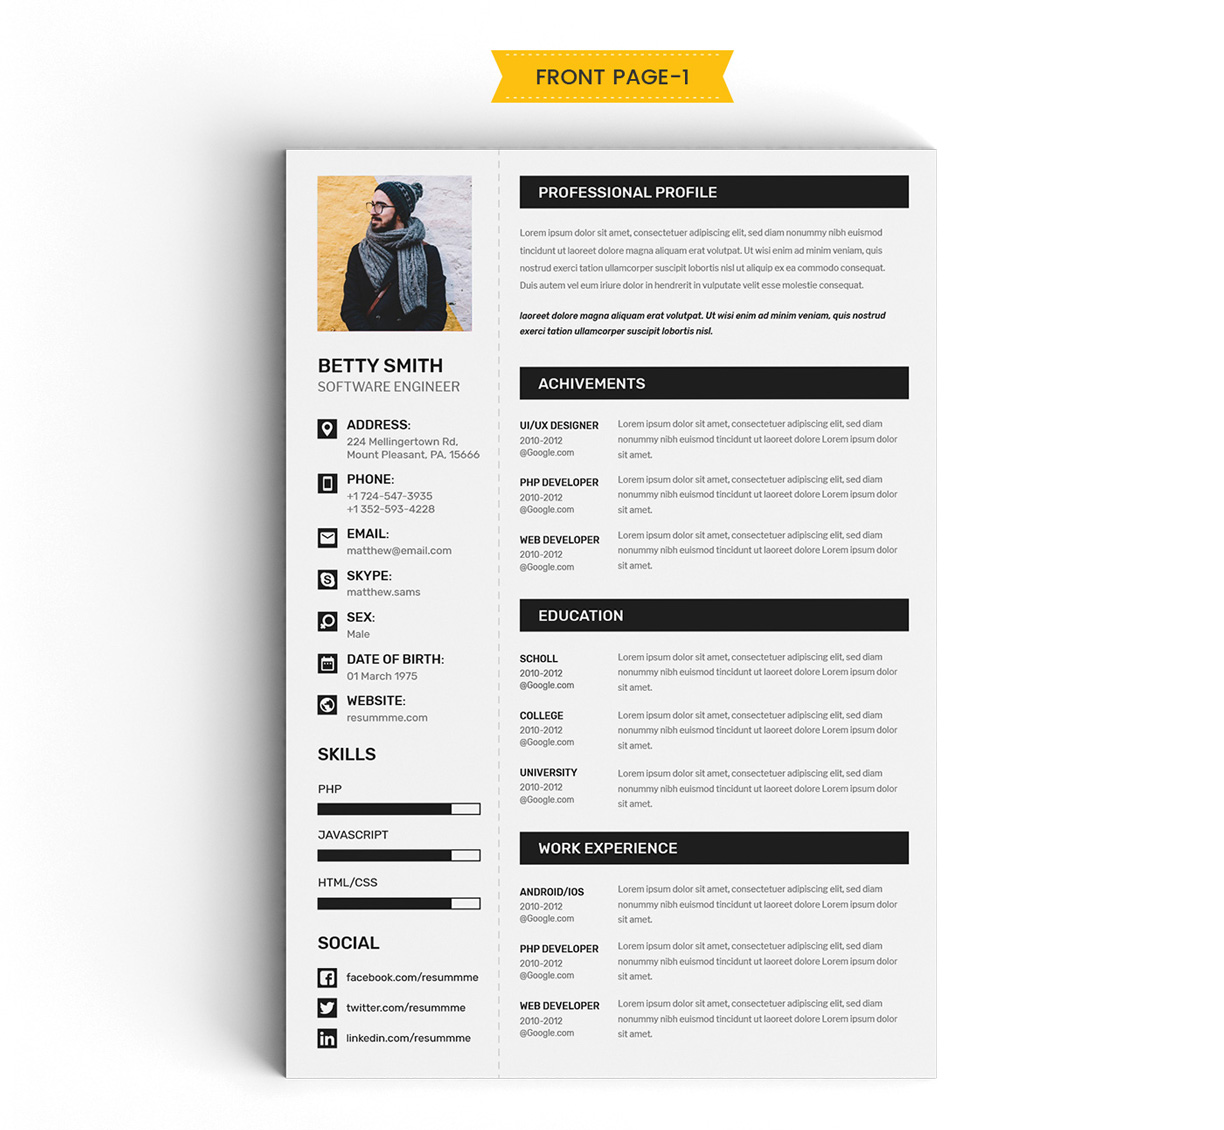 Free Simple Resume (CV) Design Template With Cover Letter & Portfolio Ai File (2)